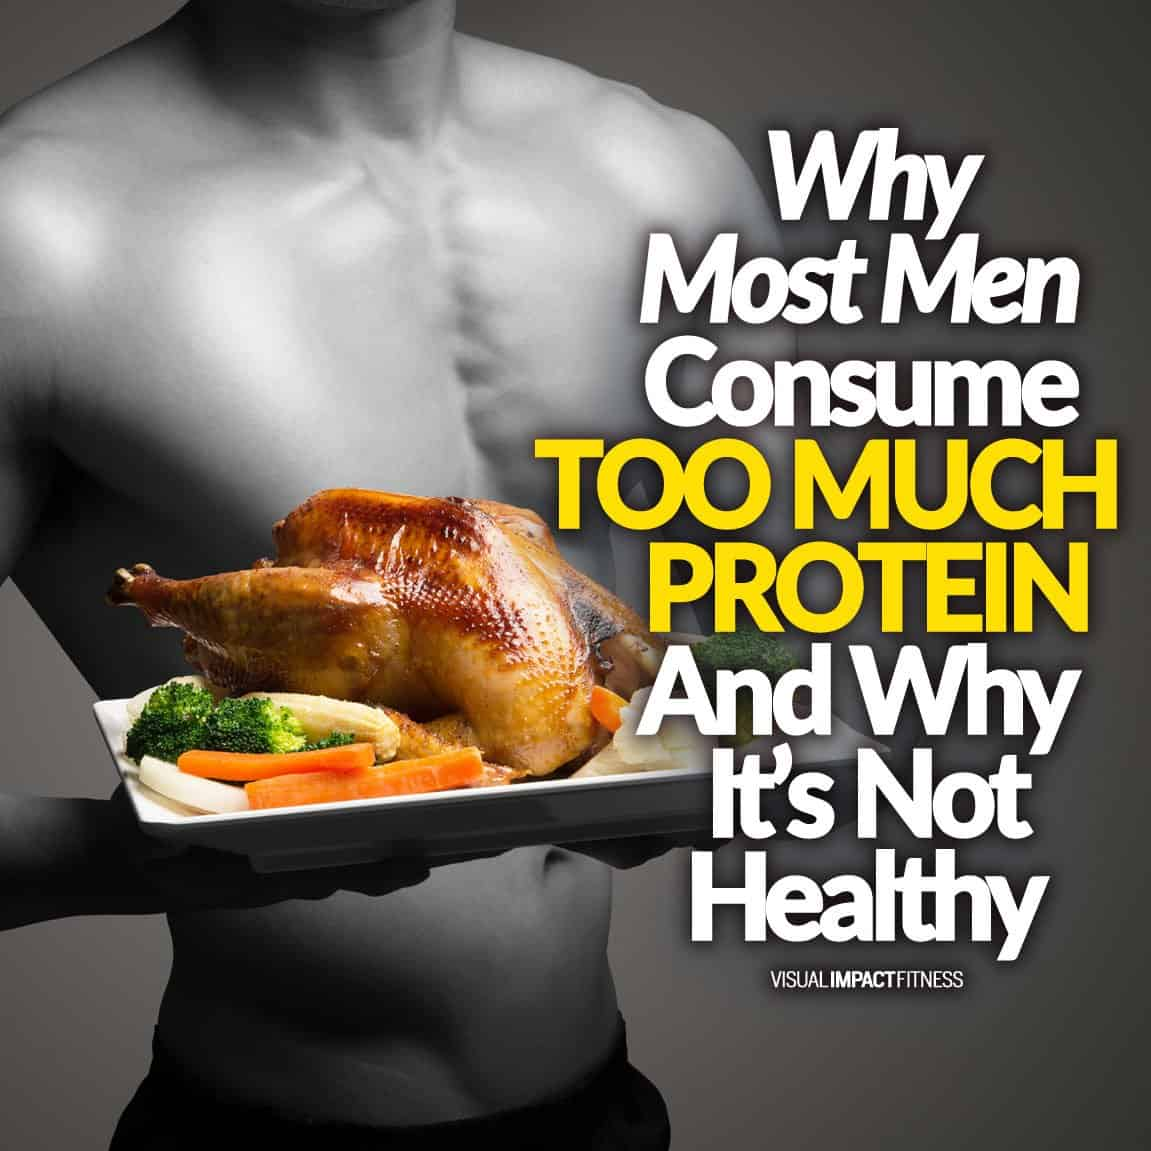 Why Most Men Consume TOO MUCH Protein